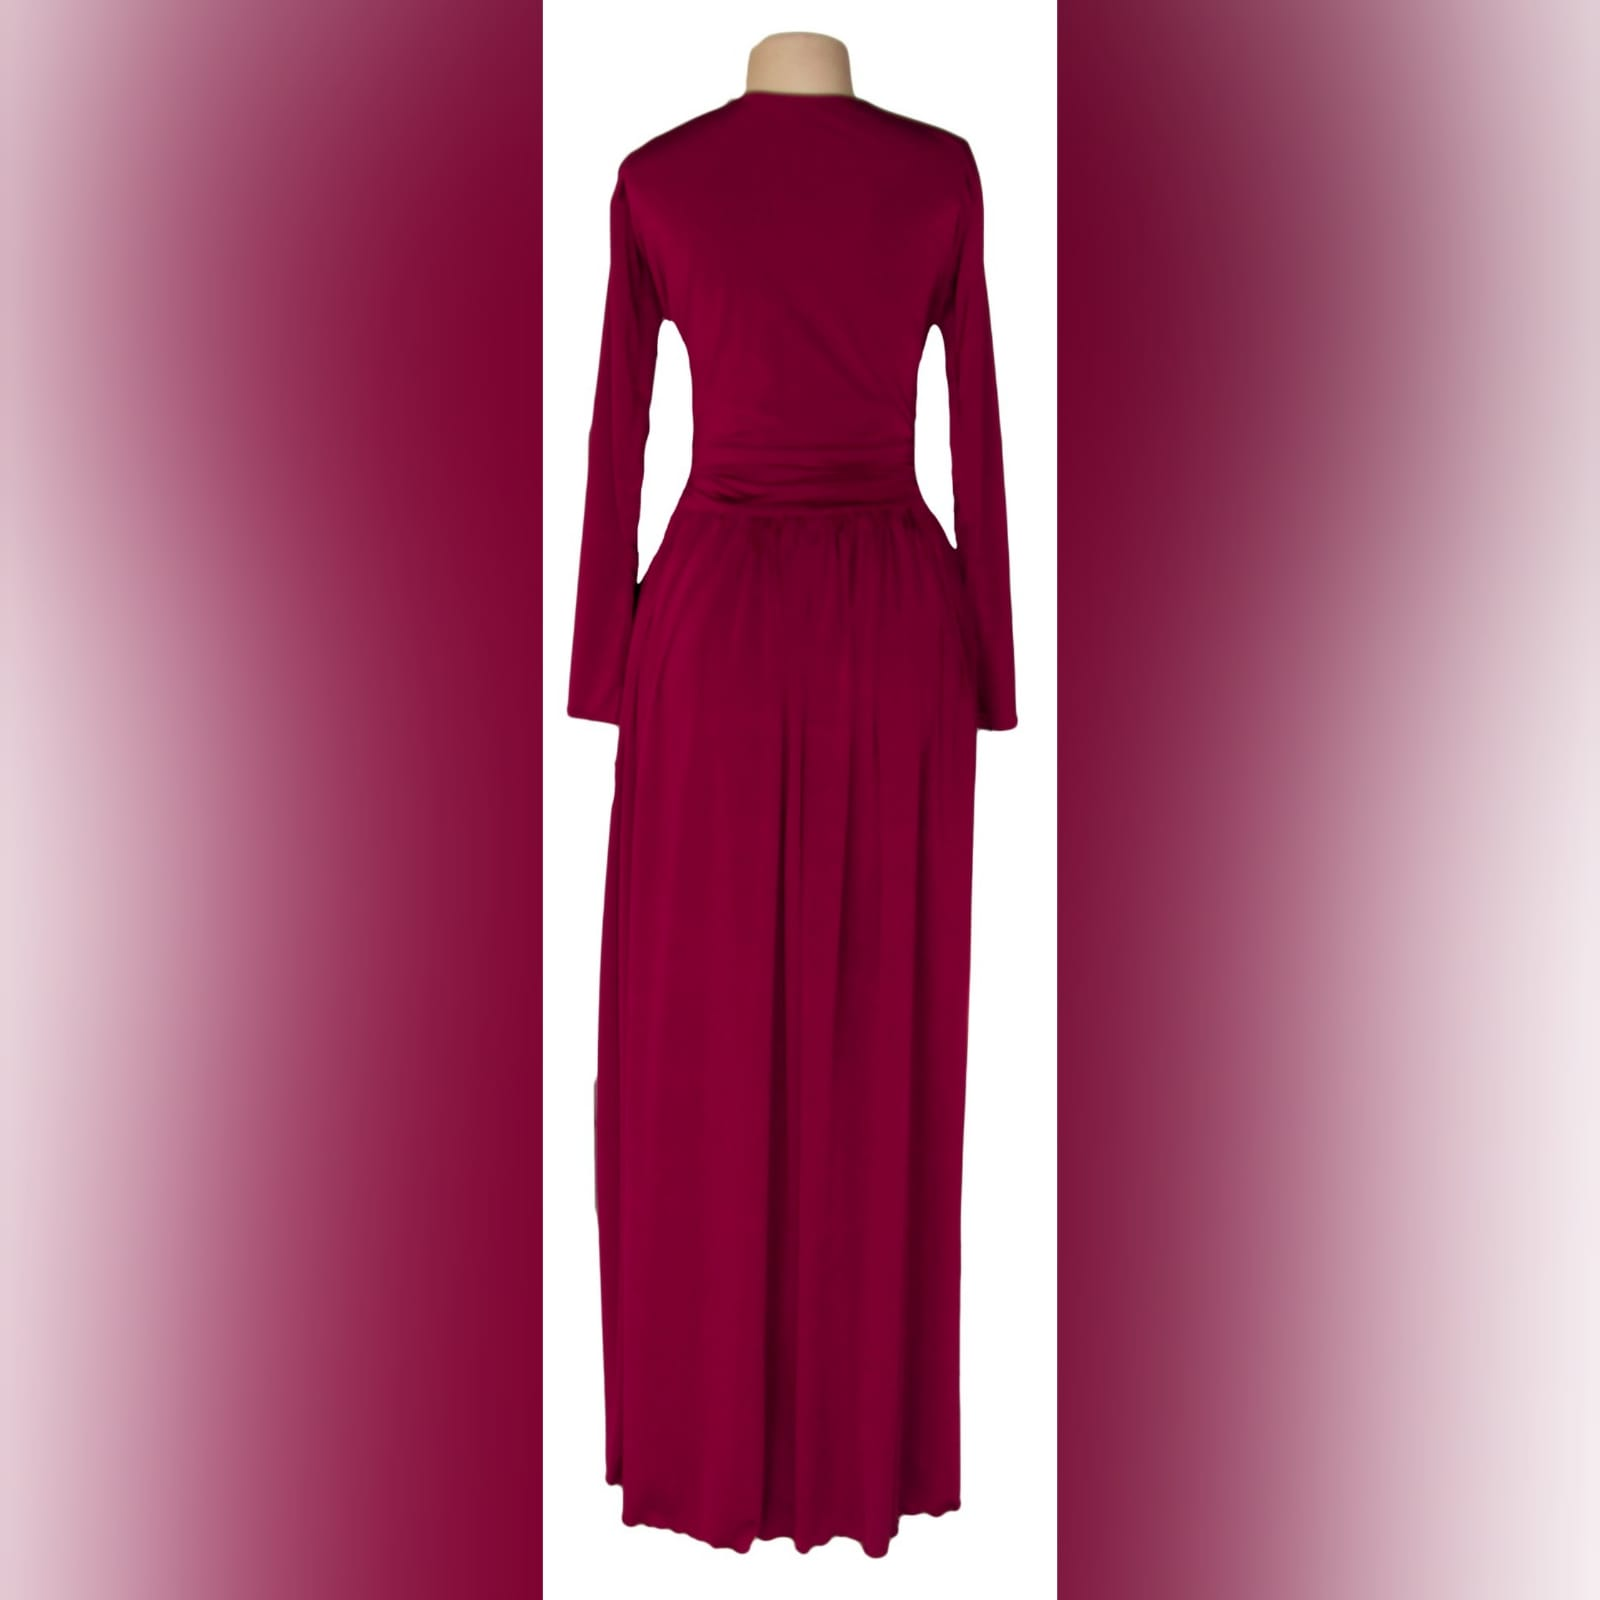 Burgundy simple long prom dress 5 burgundy simple long prom dress with a v neckline, long fitted sleeves, flowy gathered bottom with a slit and a little train.